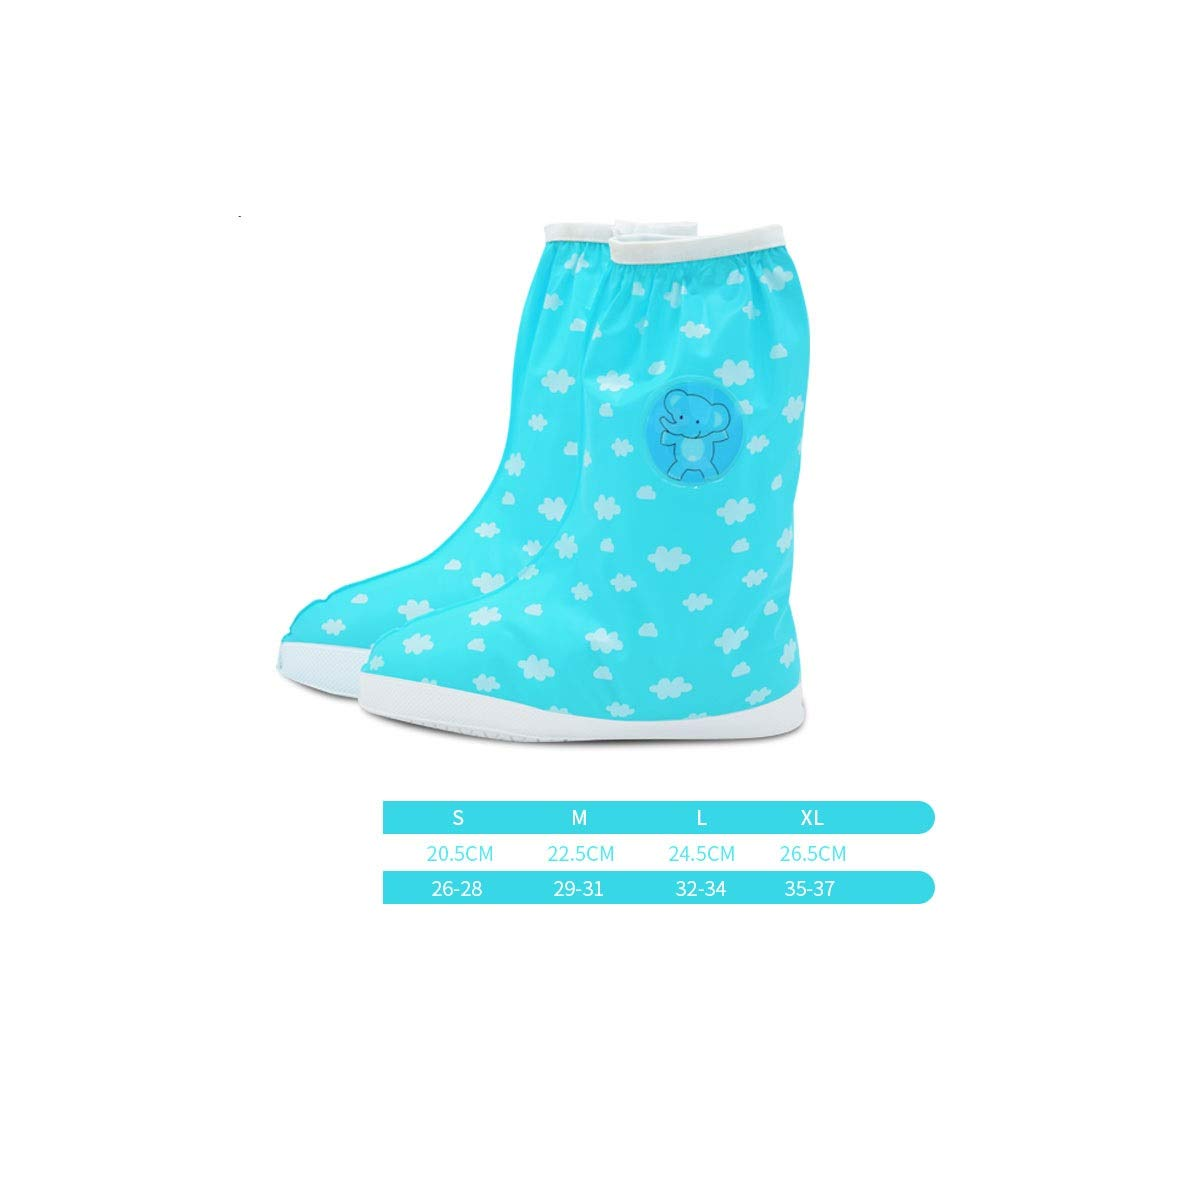 WUHUIZHENJINGXIAOBU Rain Boots, Men and Women Thick Wear-Resistant Anti-Slip Sand Cover, Student Rain Waterproof Shoe Cover, A Variety of Colors Available Shoe Covers That can be Worn on Rainy Days, by WUHUIZHENJINGXIAOBU